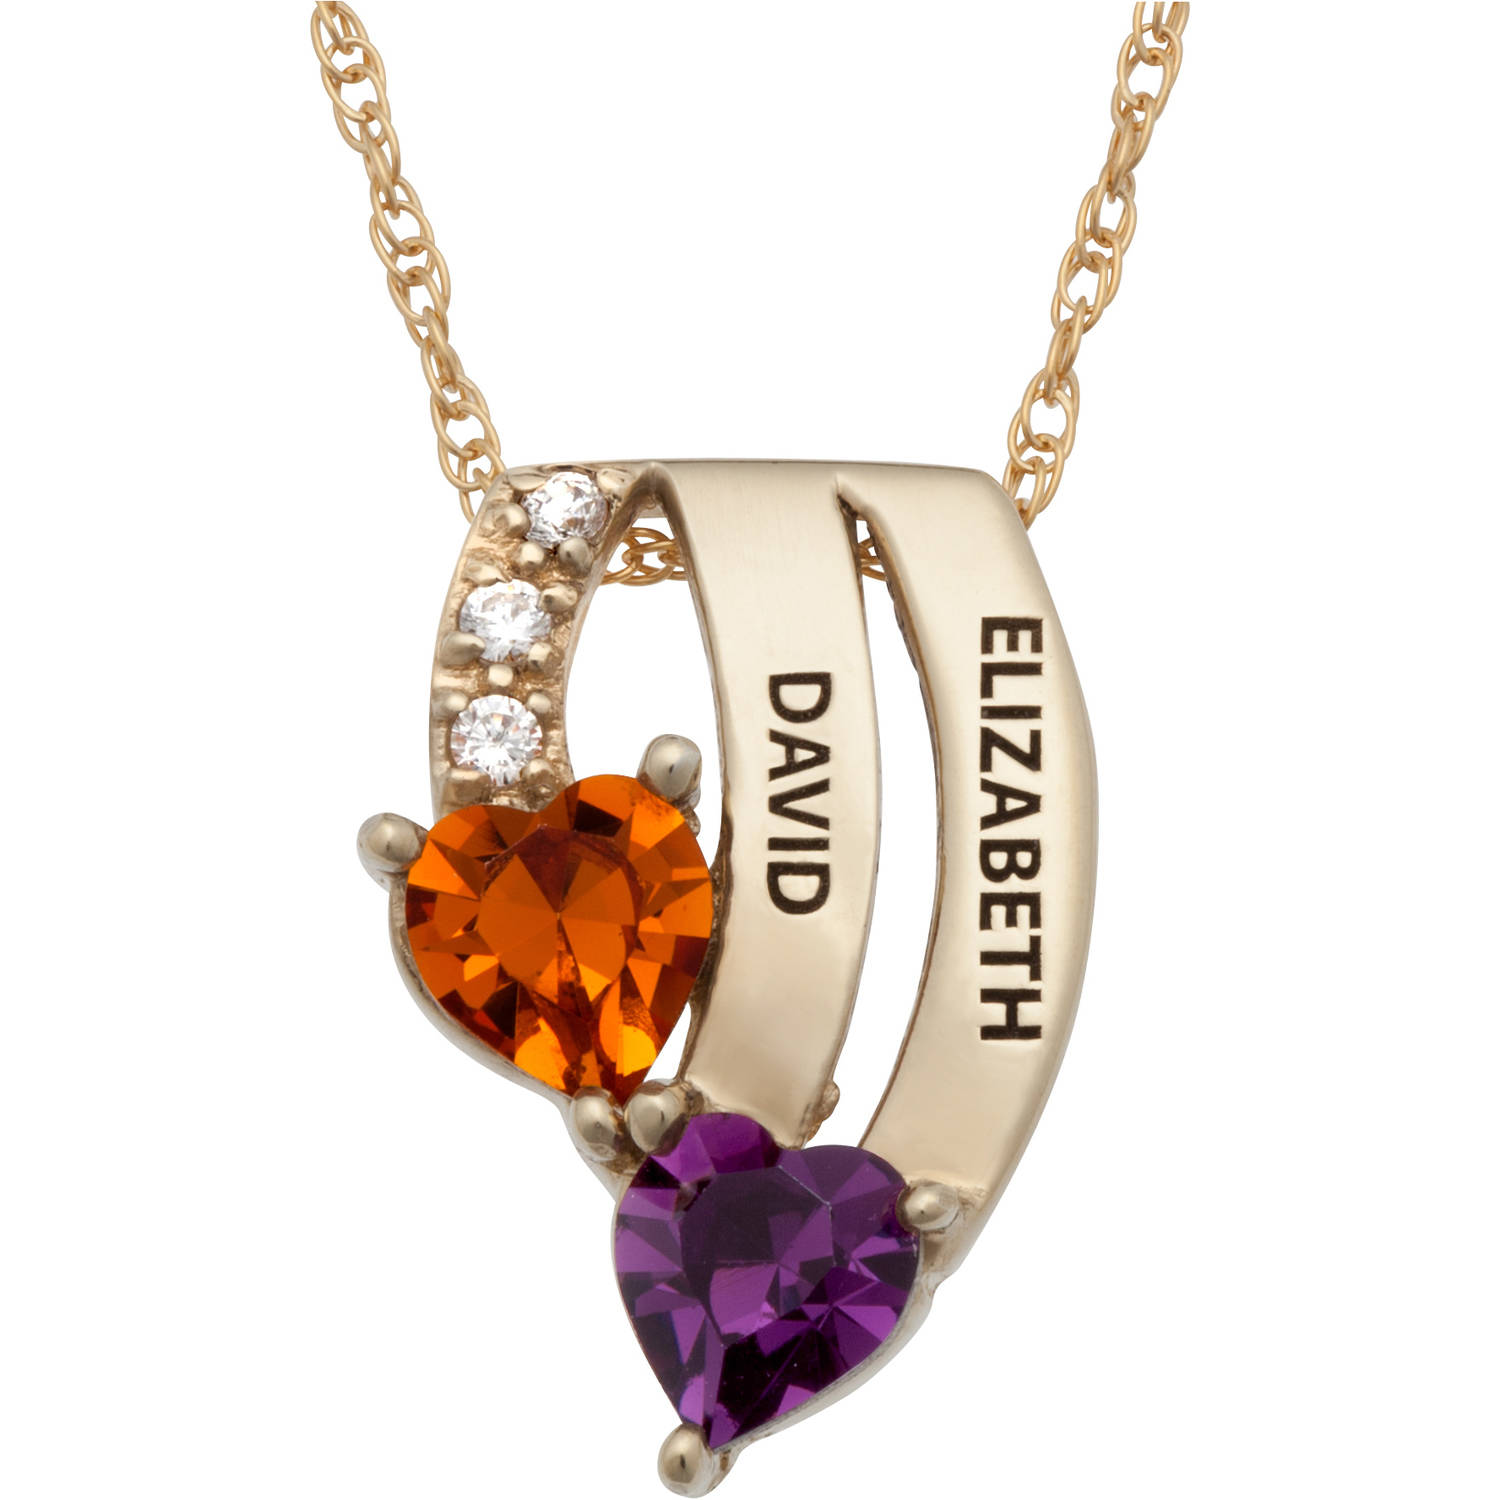 Personalized Women's Gold over Silver Couples Cascading Name & Birthstone Hearts Pendant